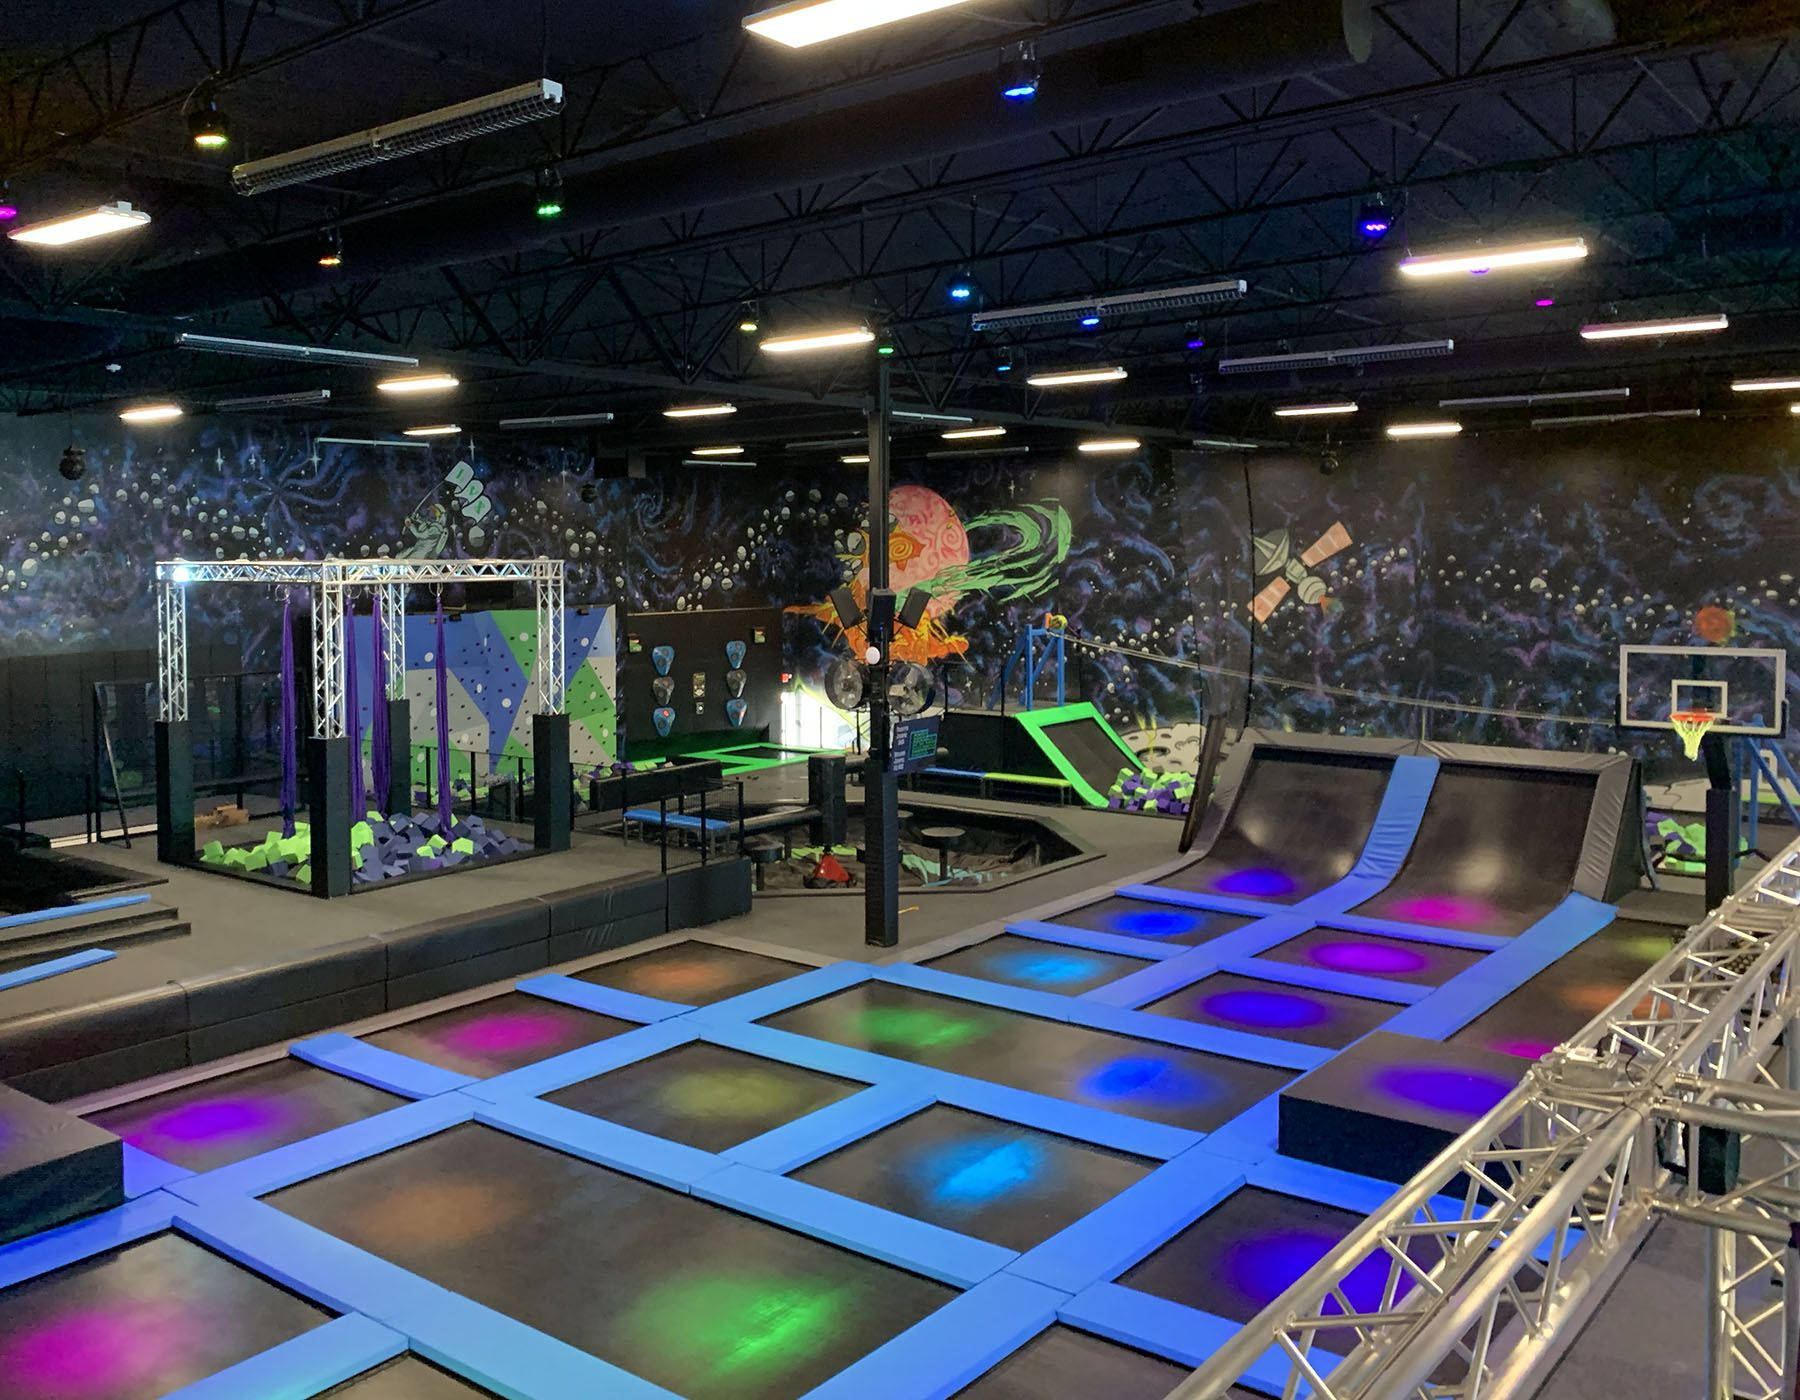 Elevate Trampoline Park Is Now Open In The Queen Creek Area In 2020 Trampoline Park Trampoline Queen Creek